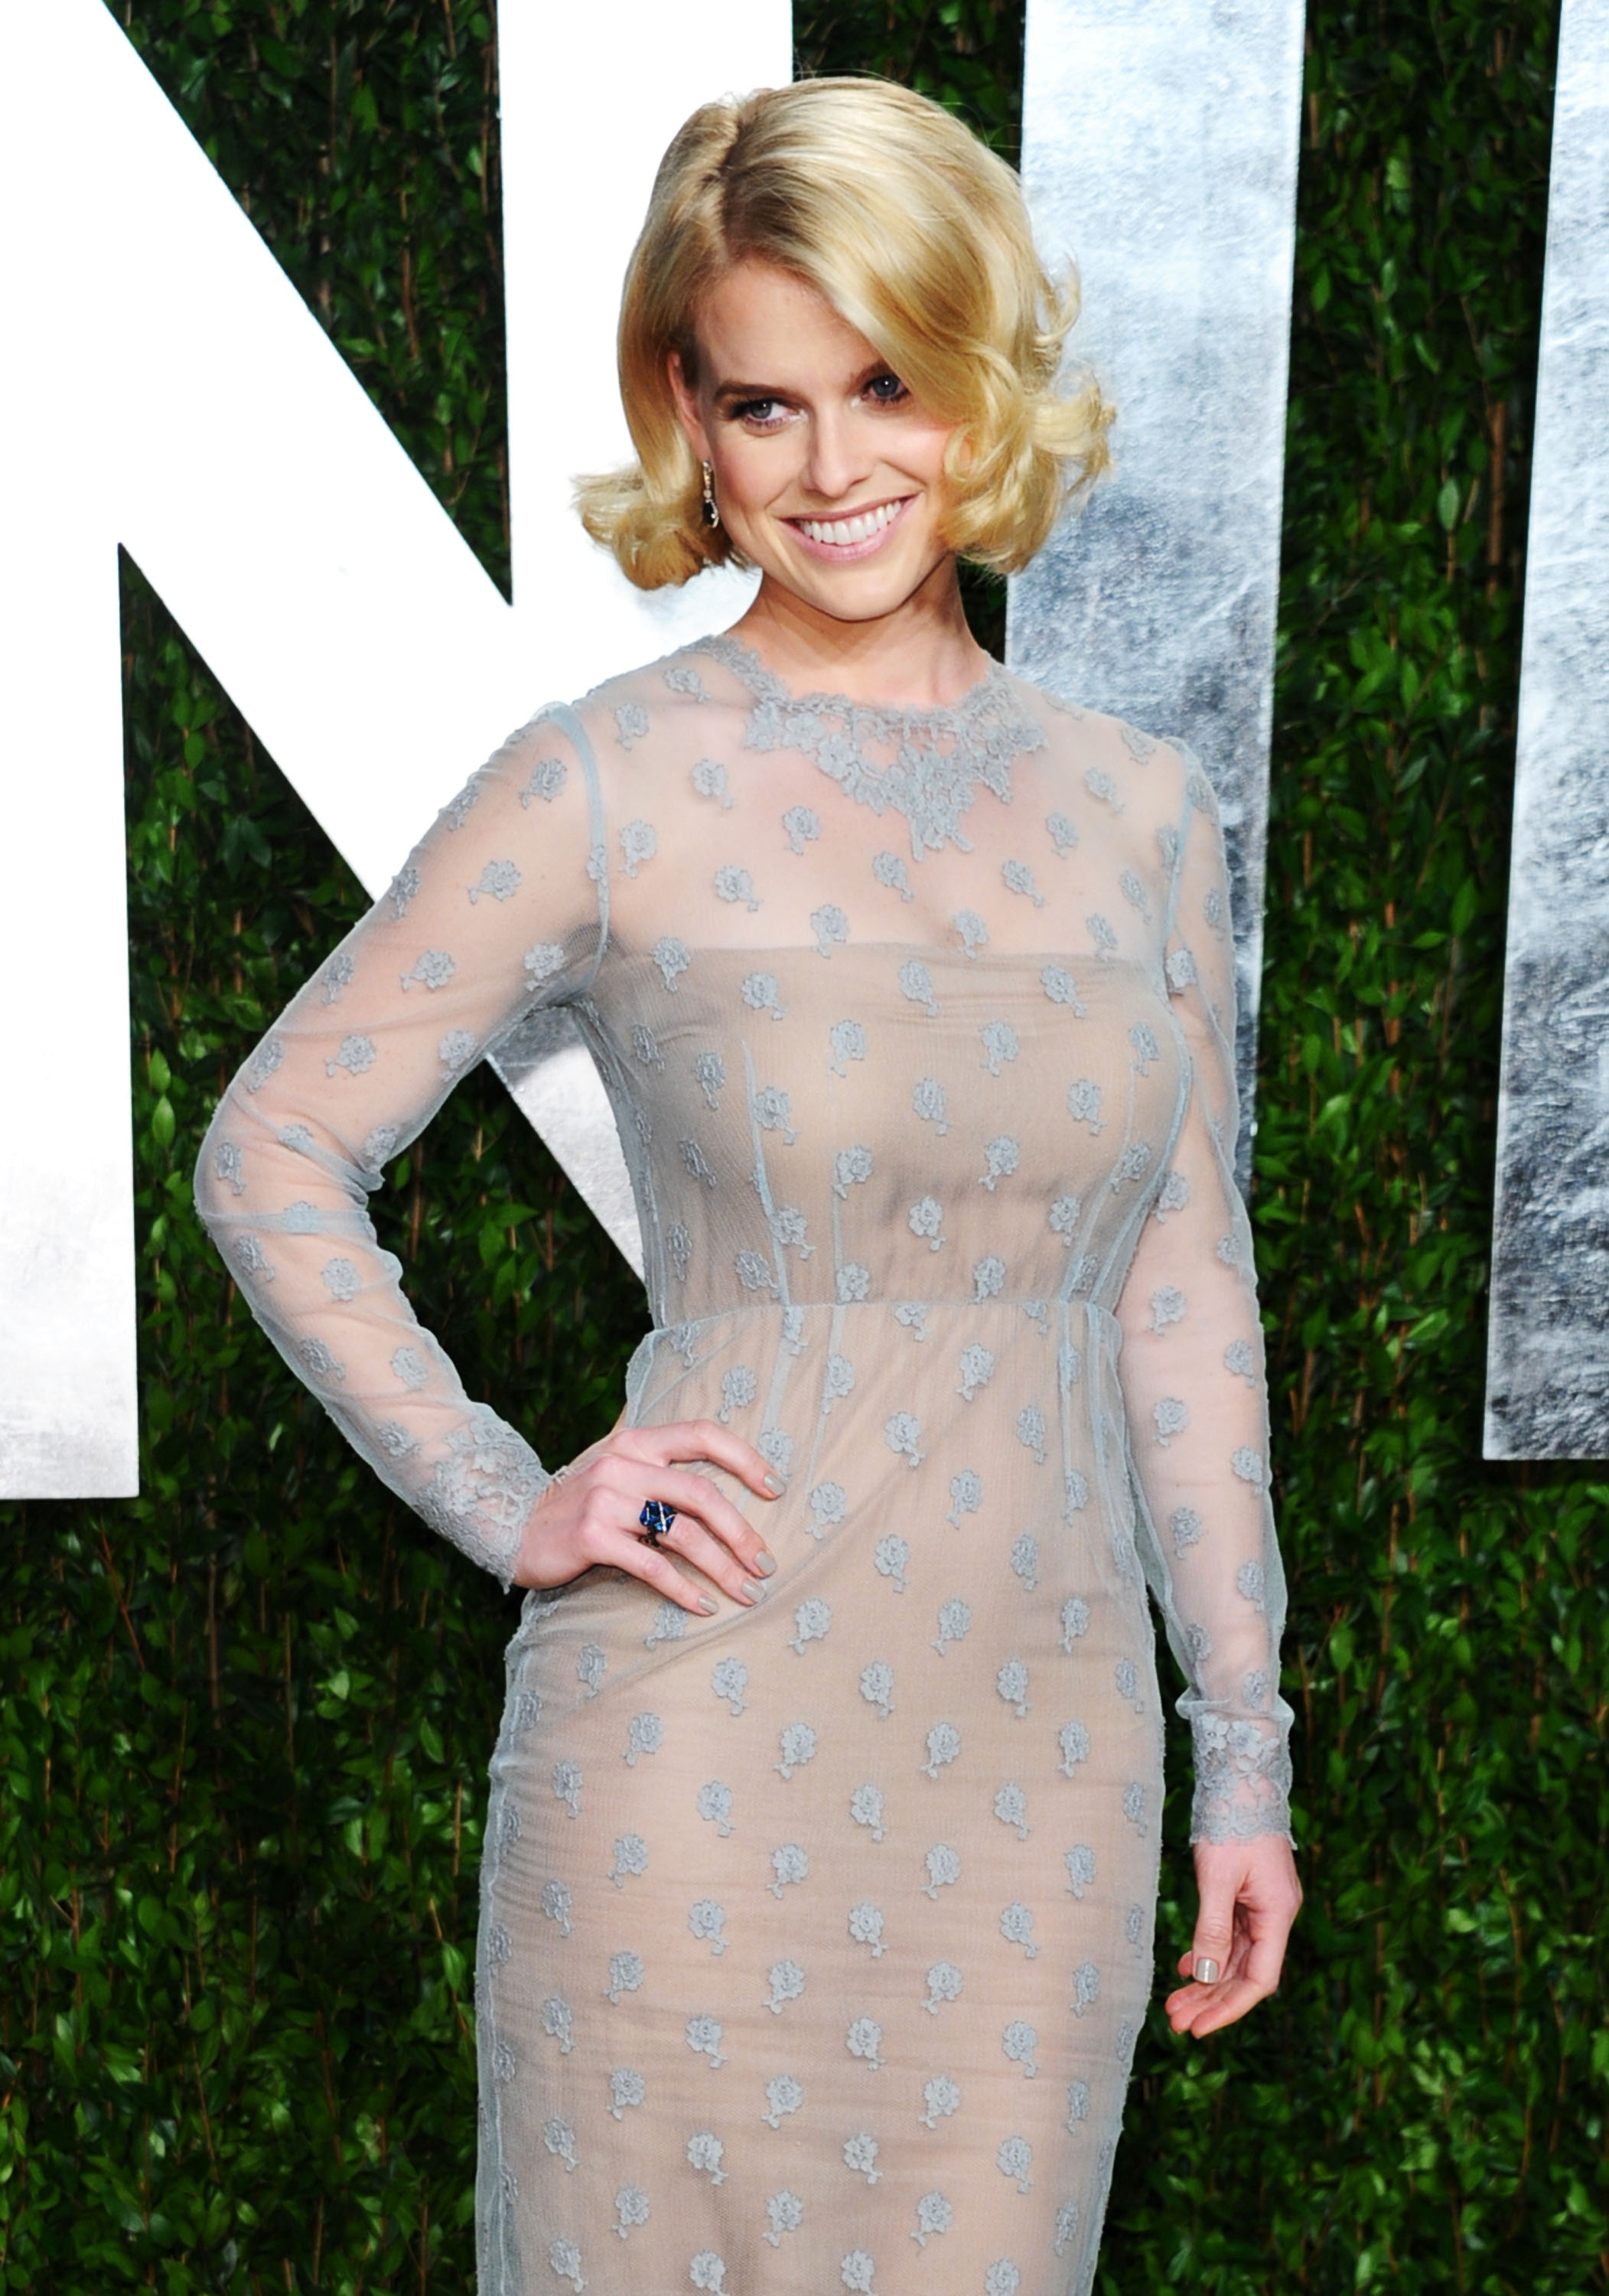 Элис Ив, фото 324. Alice Eve 2012 Vanity Fair Oscar Party - February 26, 2012, foto 324